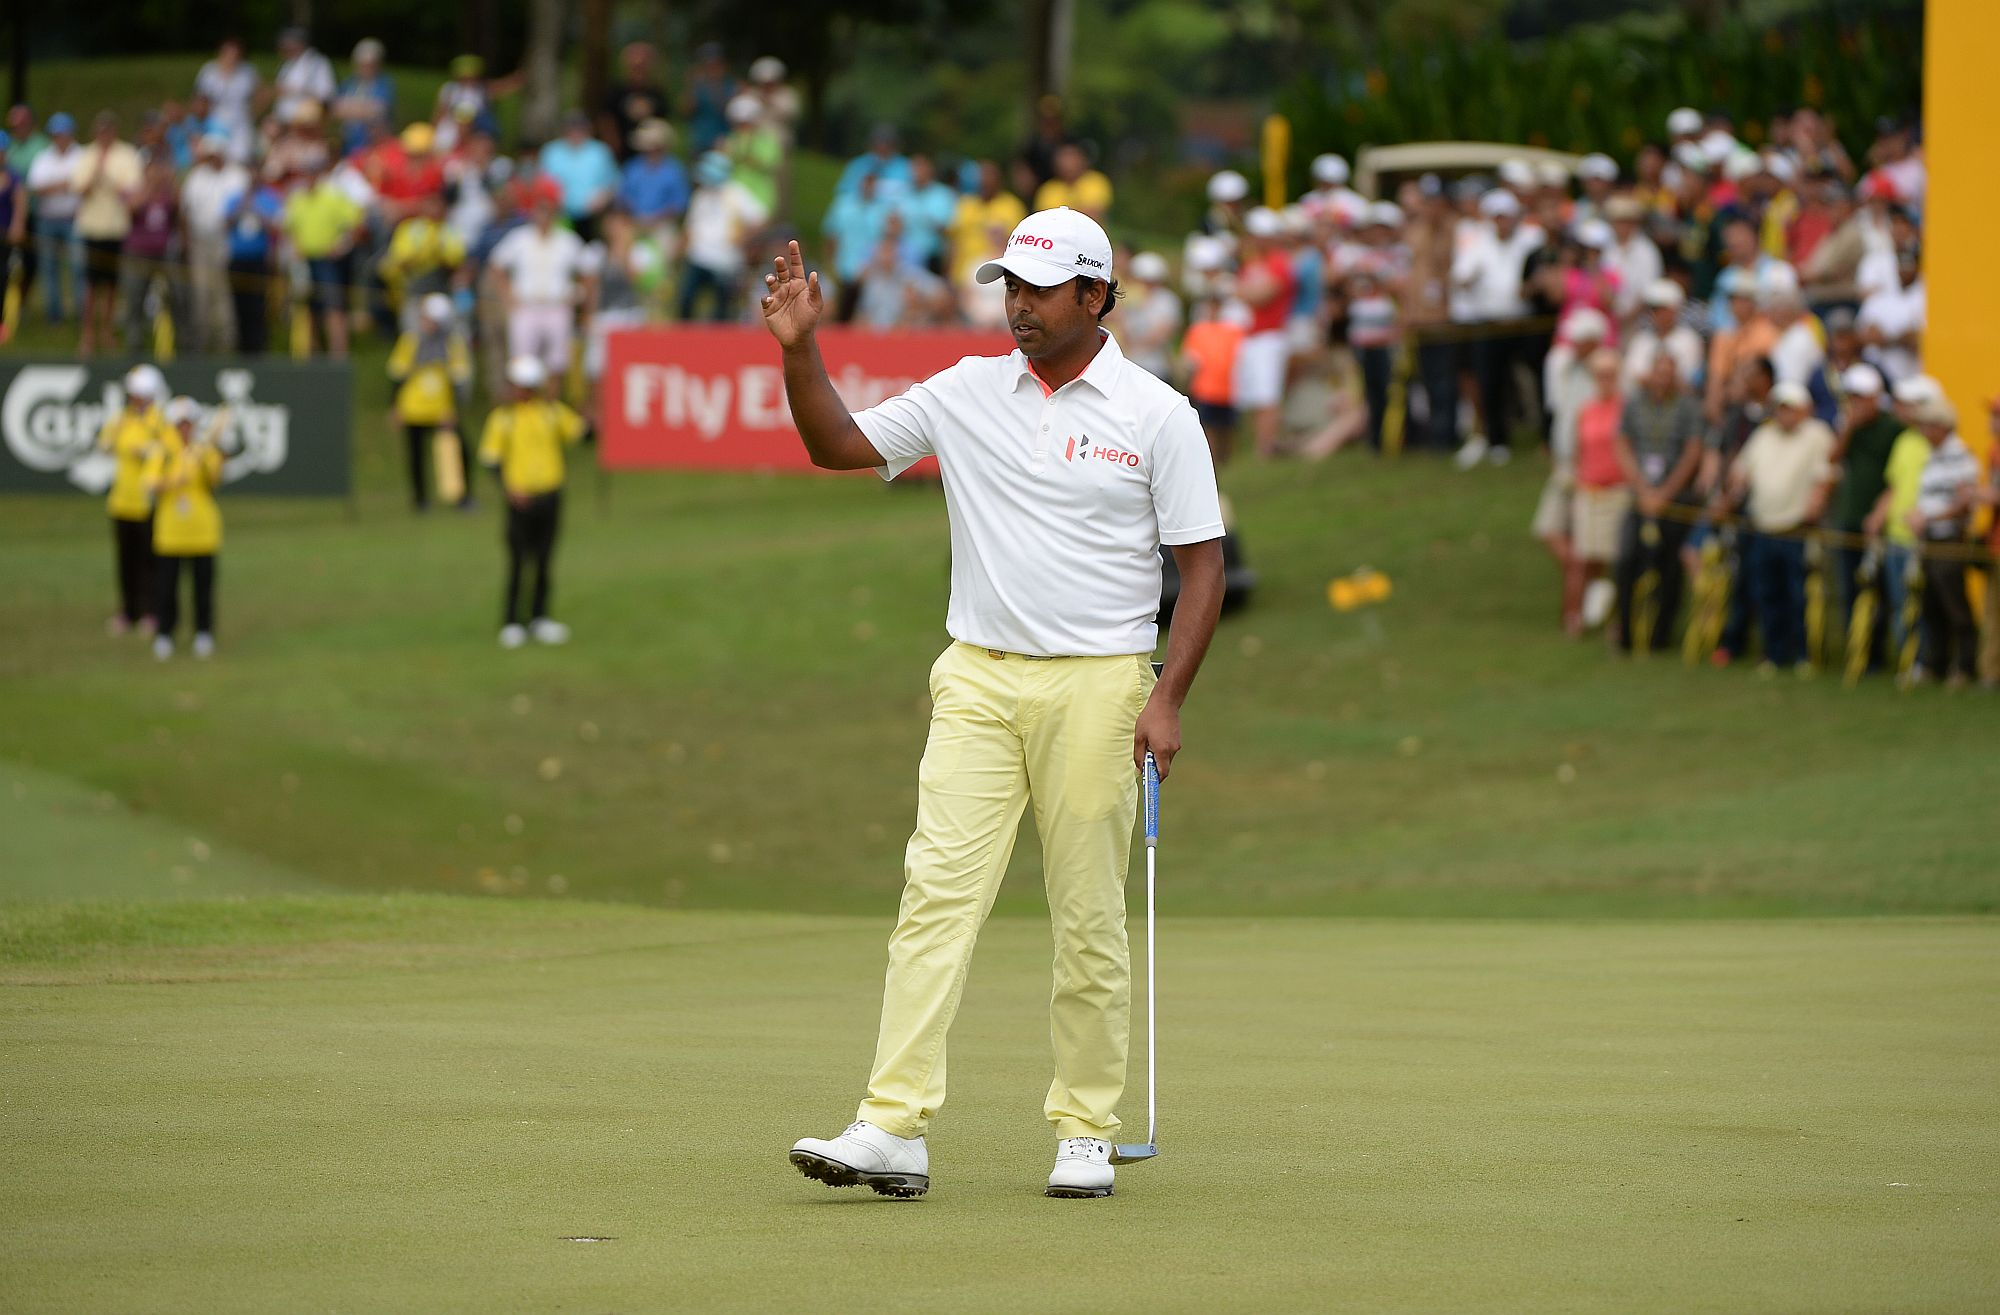 Anirban Lahiri has been the brightest star on the Asian Tour this season